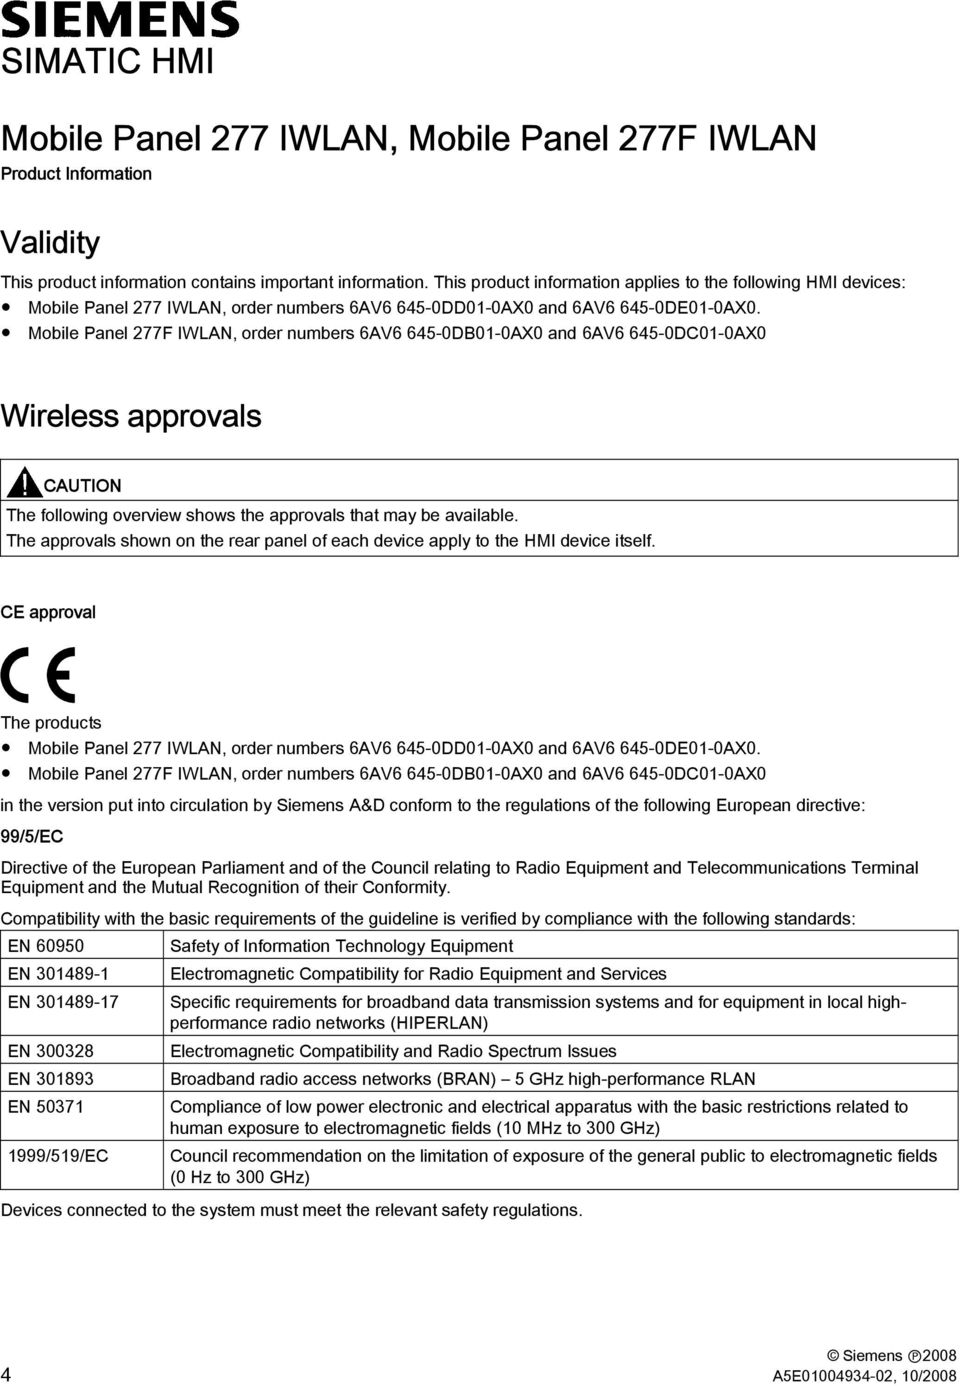 Mobile Panel 277F IWLAN, order numbers 6AV6 645-0DB01-0AX0 and 6AV6 645-0DC01-0AX0 Wireless approvals CAUTION The following overview shows the approvals that may be available.